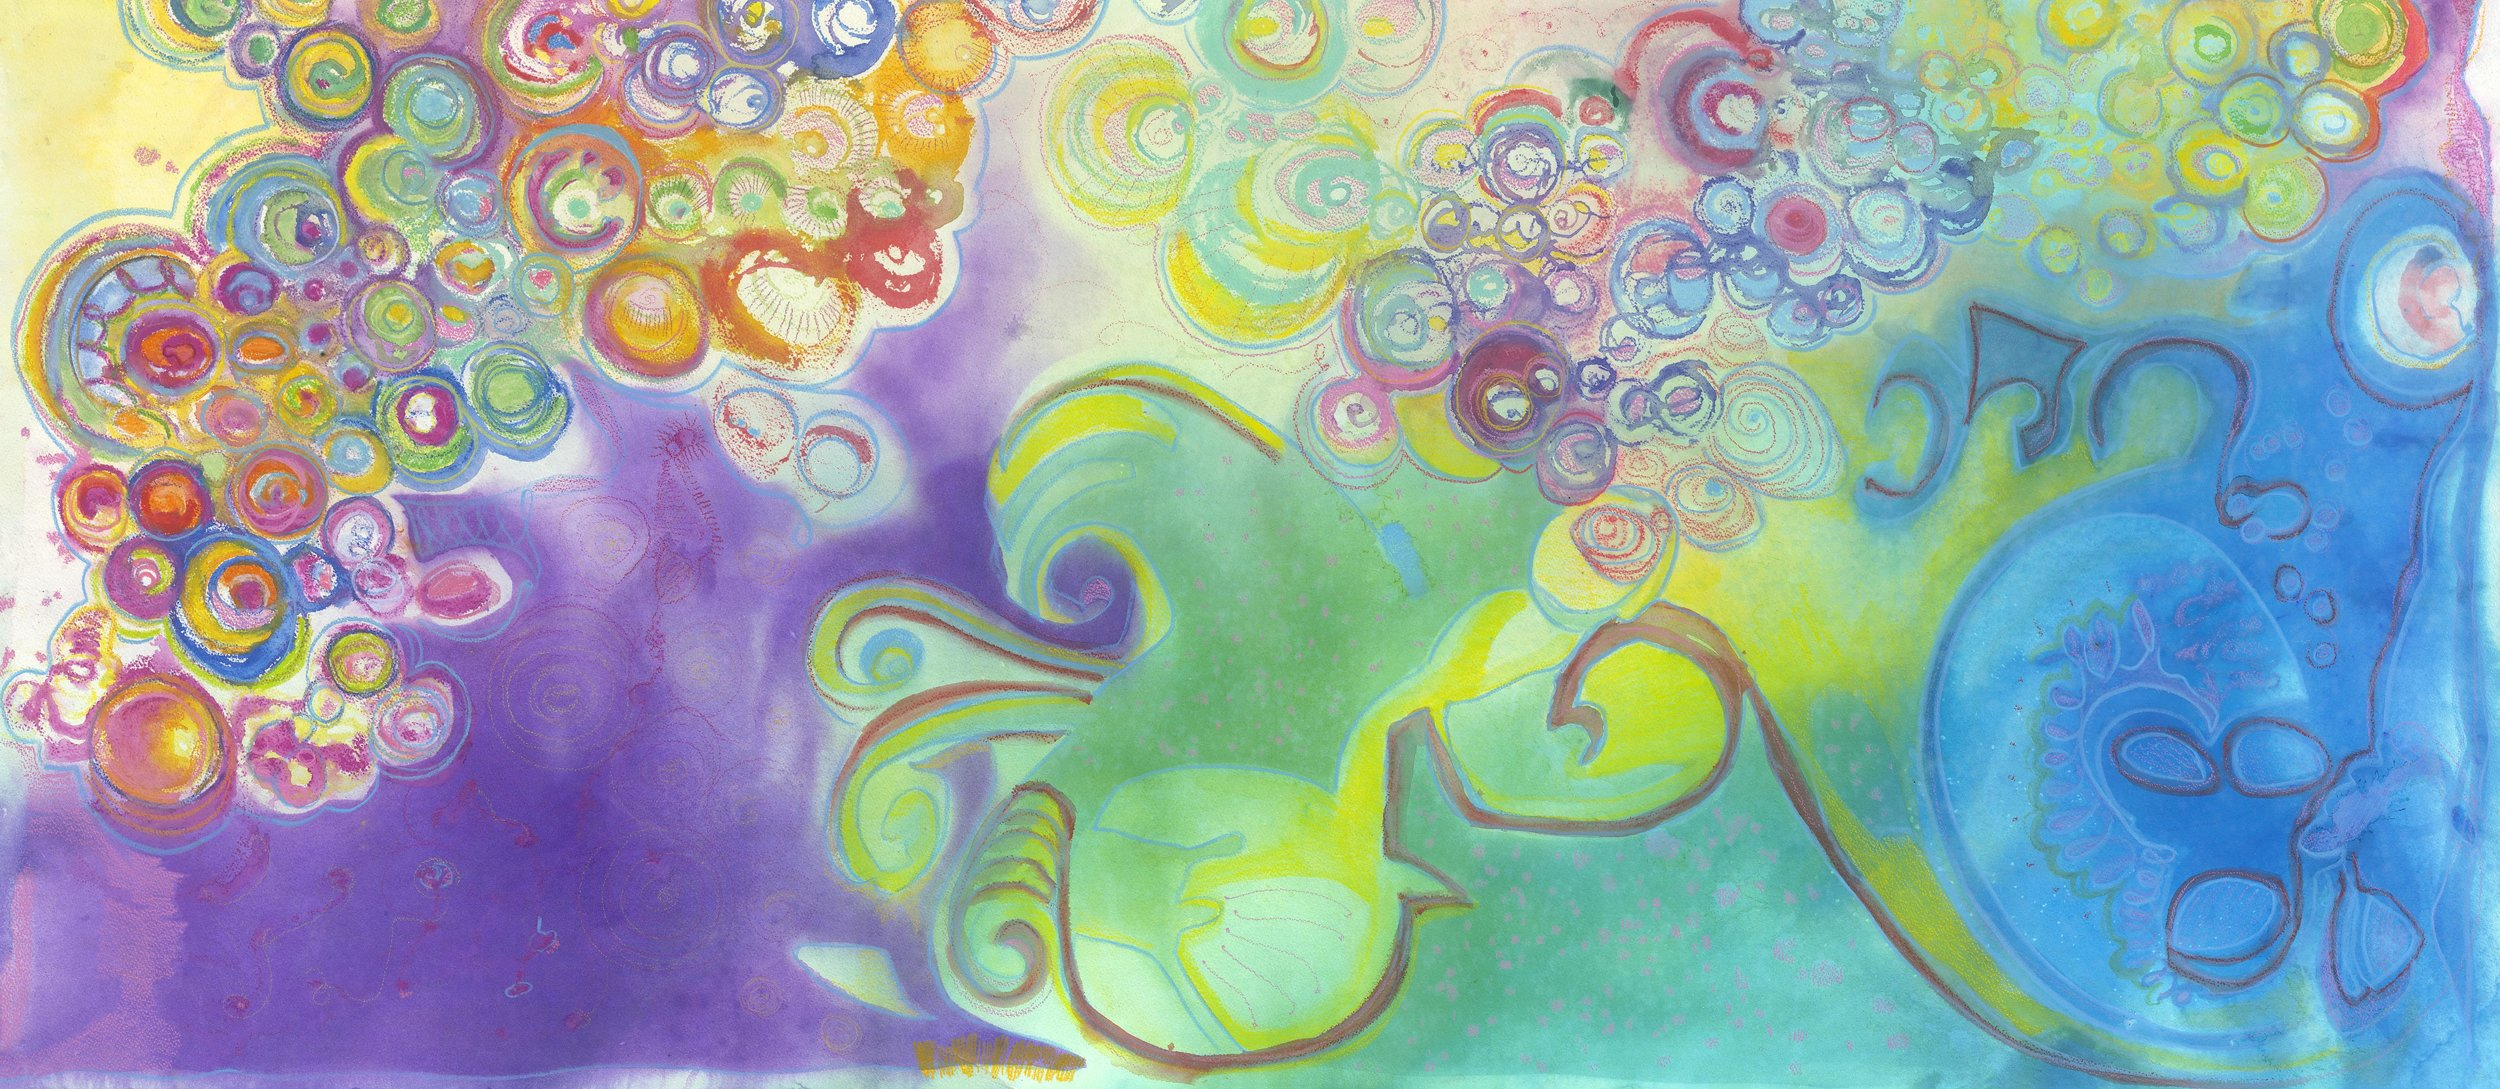 The Love Particle, 1: The Soul Series; By, Maureen Claffy 28 x 60 $4500 watercolor and watercolor crystal with colored pencil on Arches rough paper